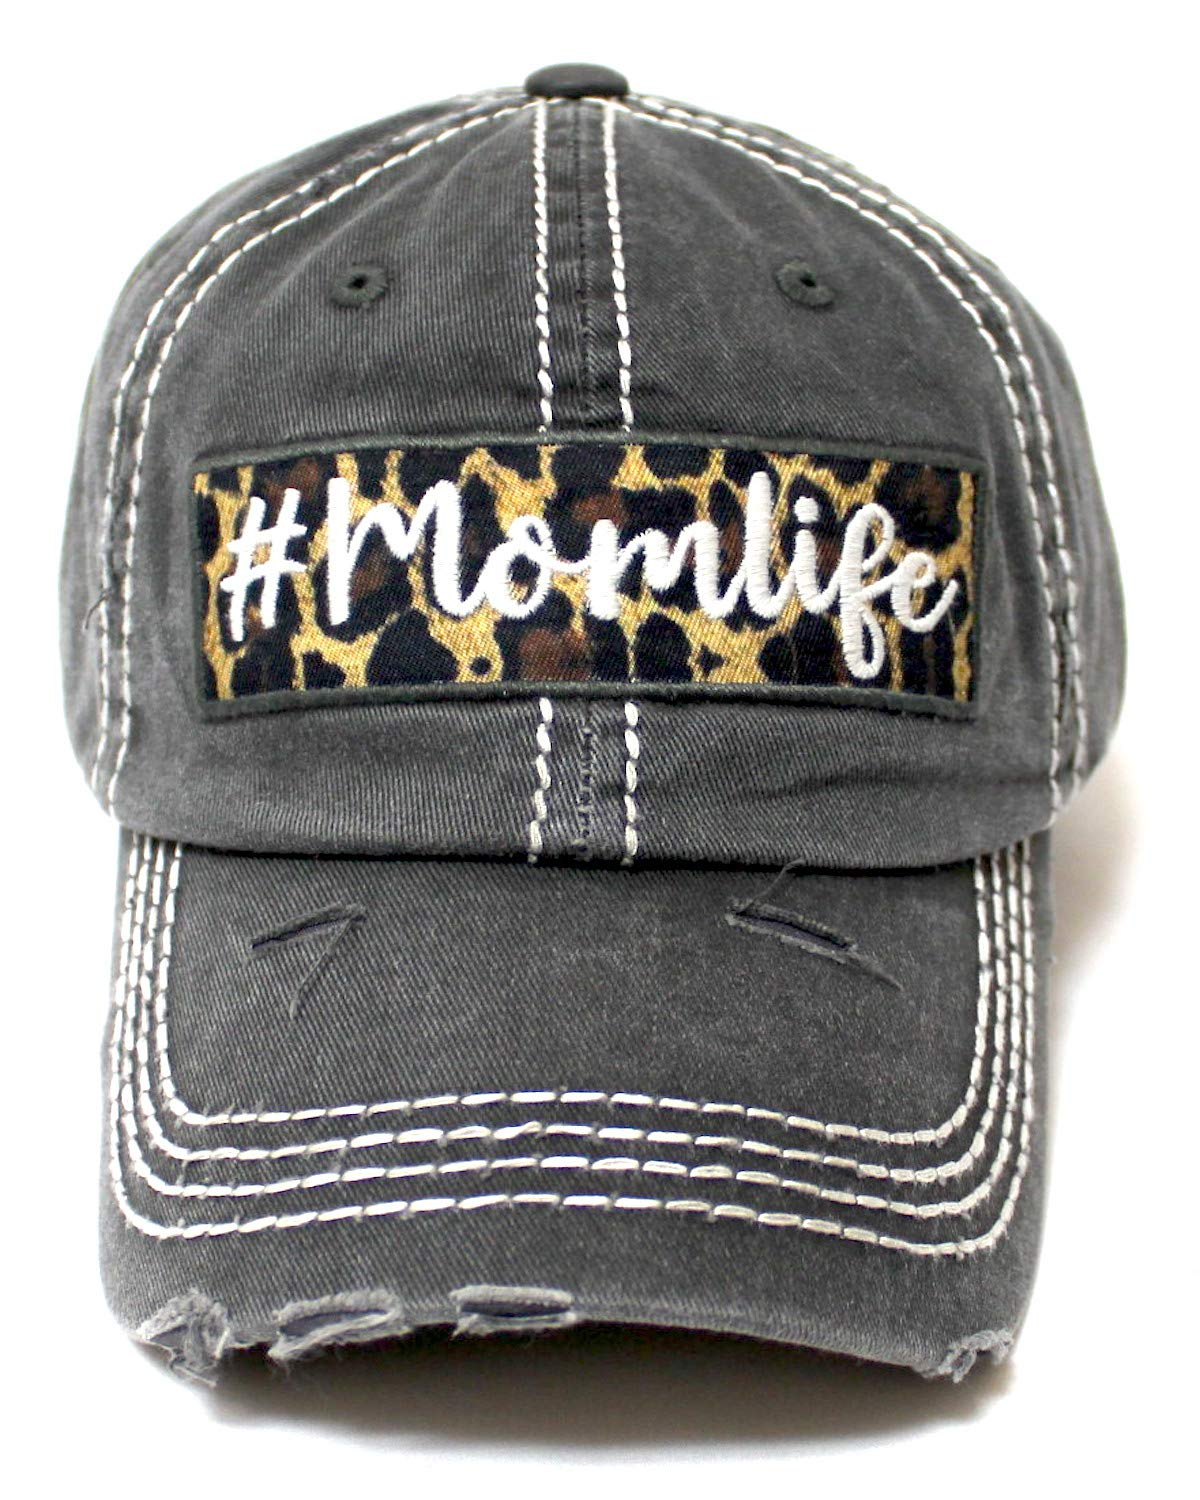 Women's Distressed Cap # Momlife Leopard Print Patch Embroidery Monogram Hat, Vintage Black - Caps 'N Vintage